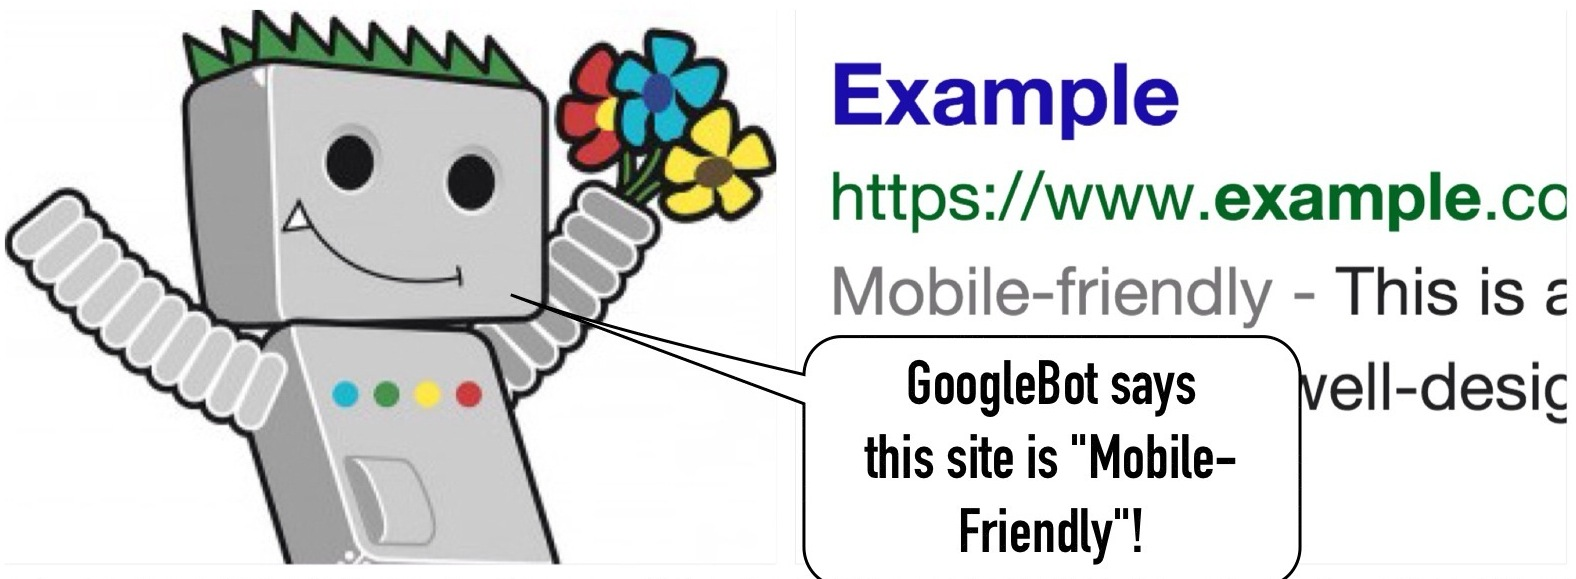 https://www.dotmug.net/wp-content/uploads/2014/12/Google-Mobile-Friendly-Message-Added-to-Mobile-Search-Results-e1418919741887.jpg